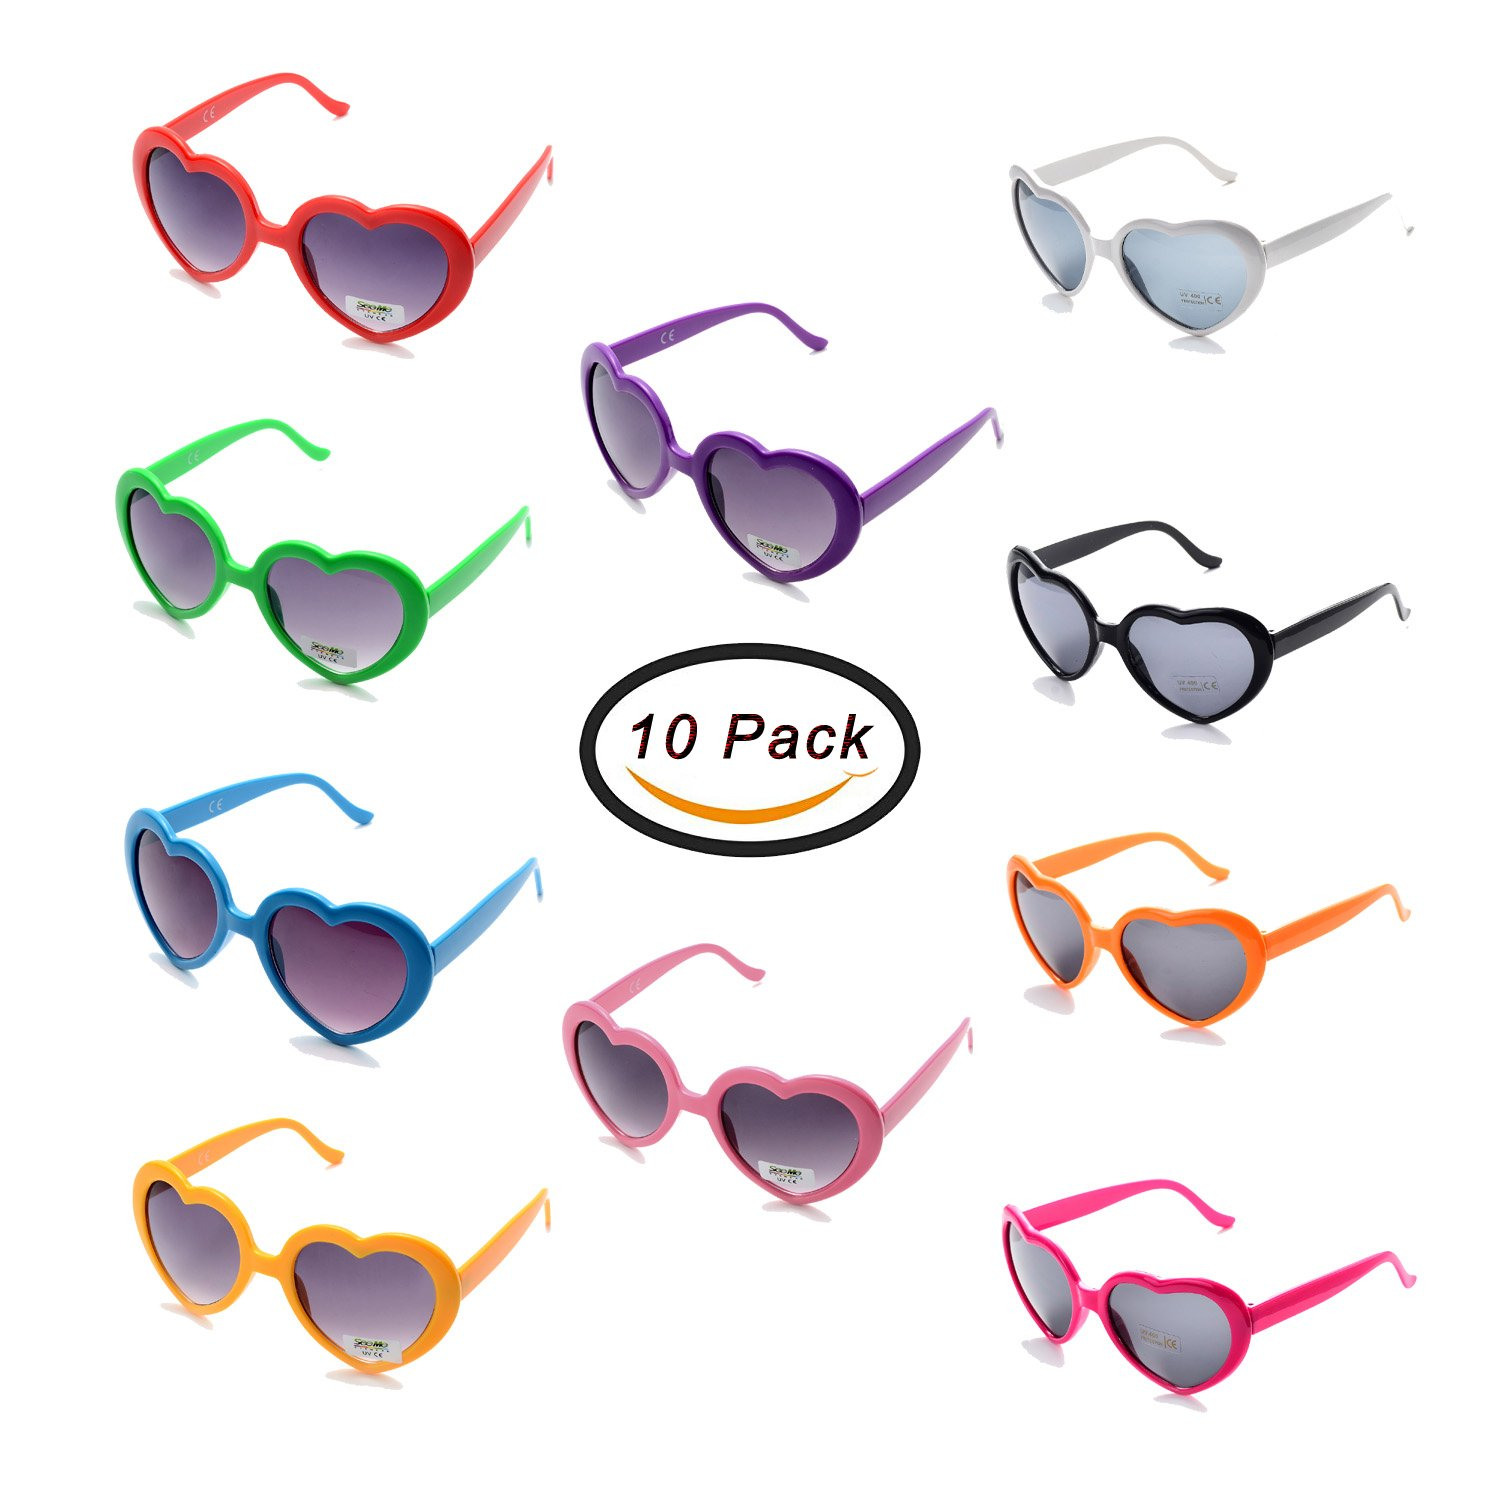 Pack of 10 Neon Heart Shaped Resin Sunglasses for Womens Kids in Party and Festival (Mix10 Pack)